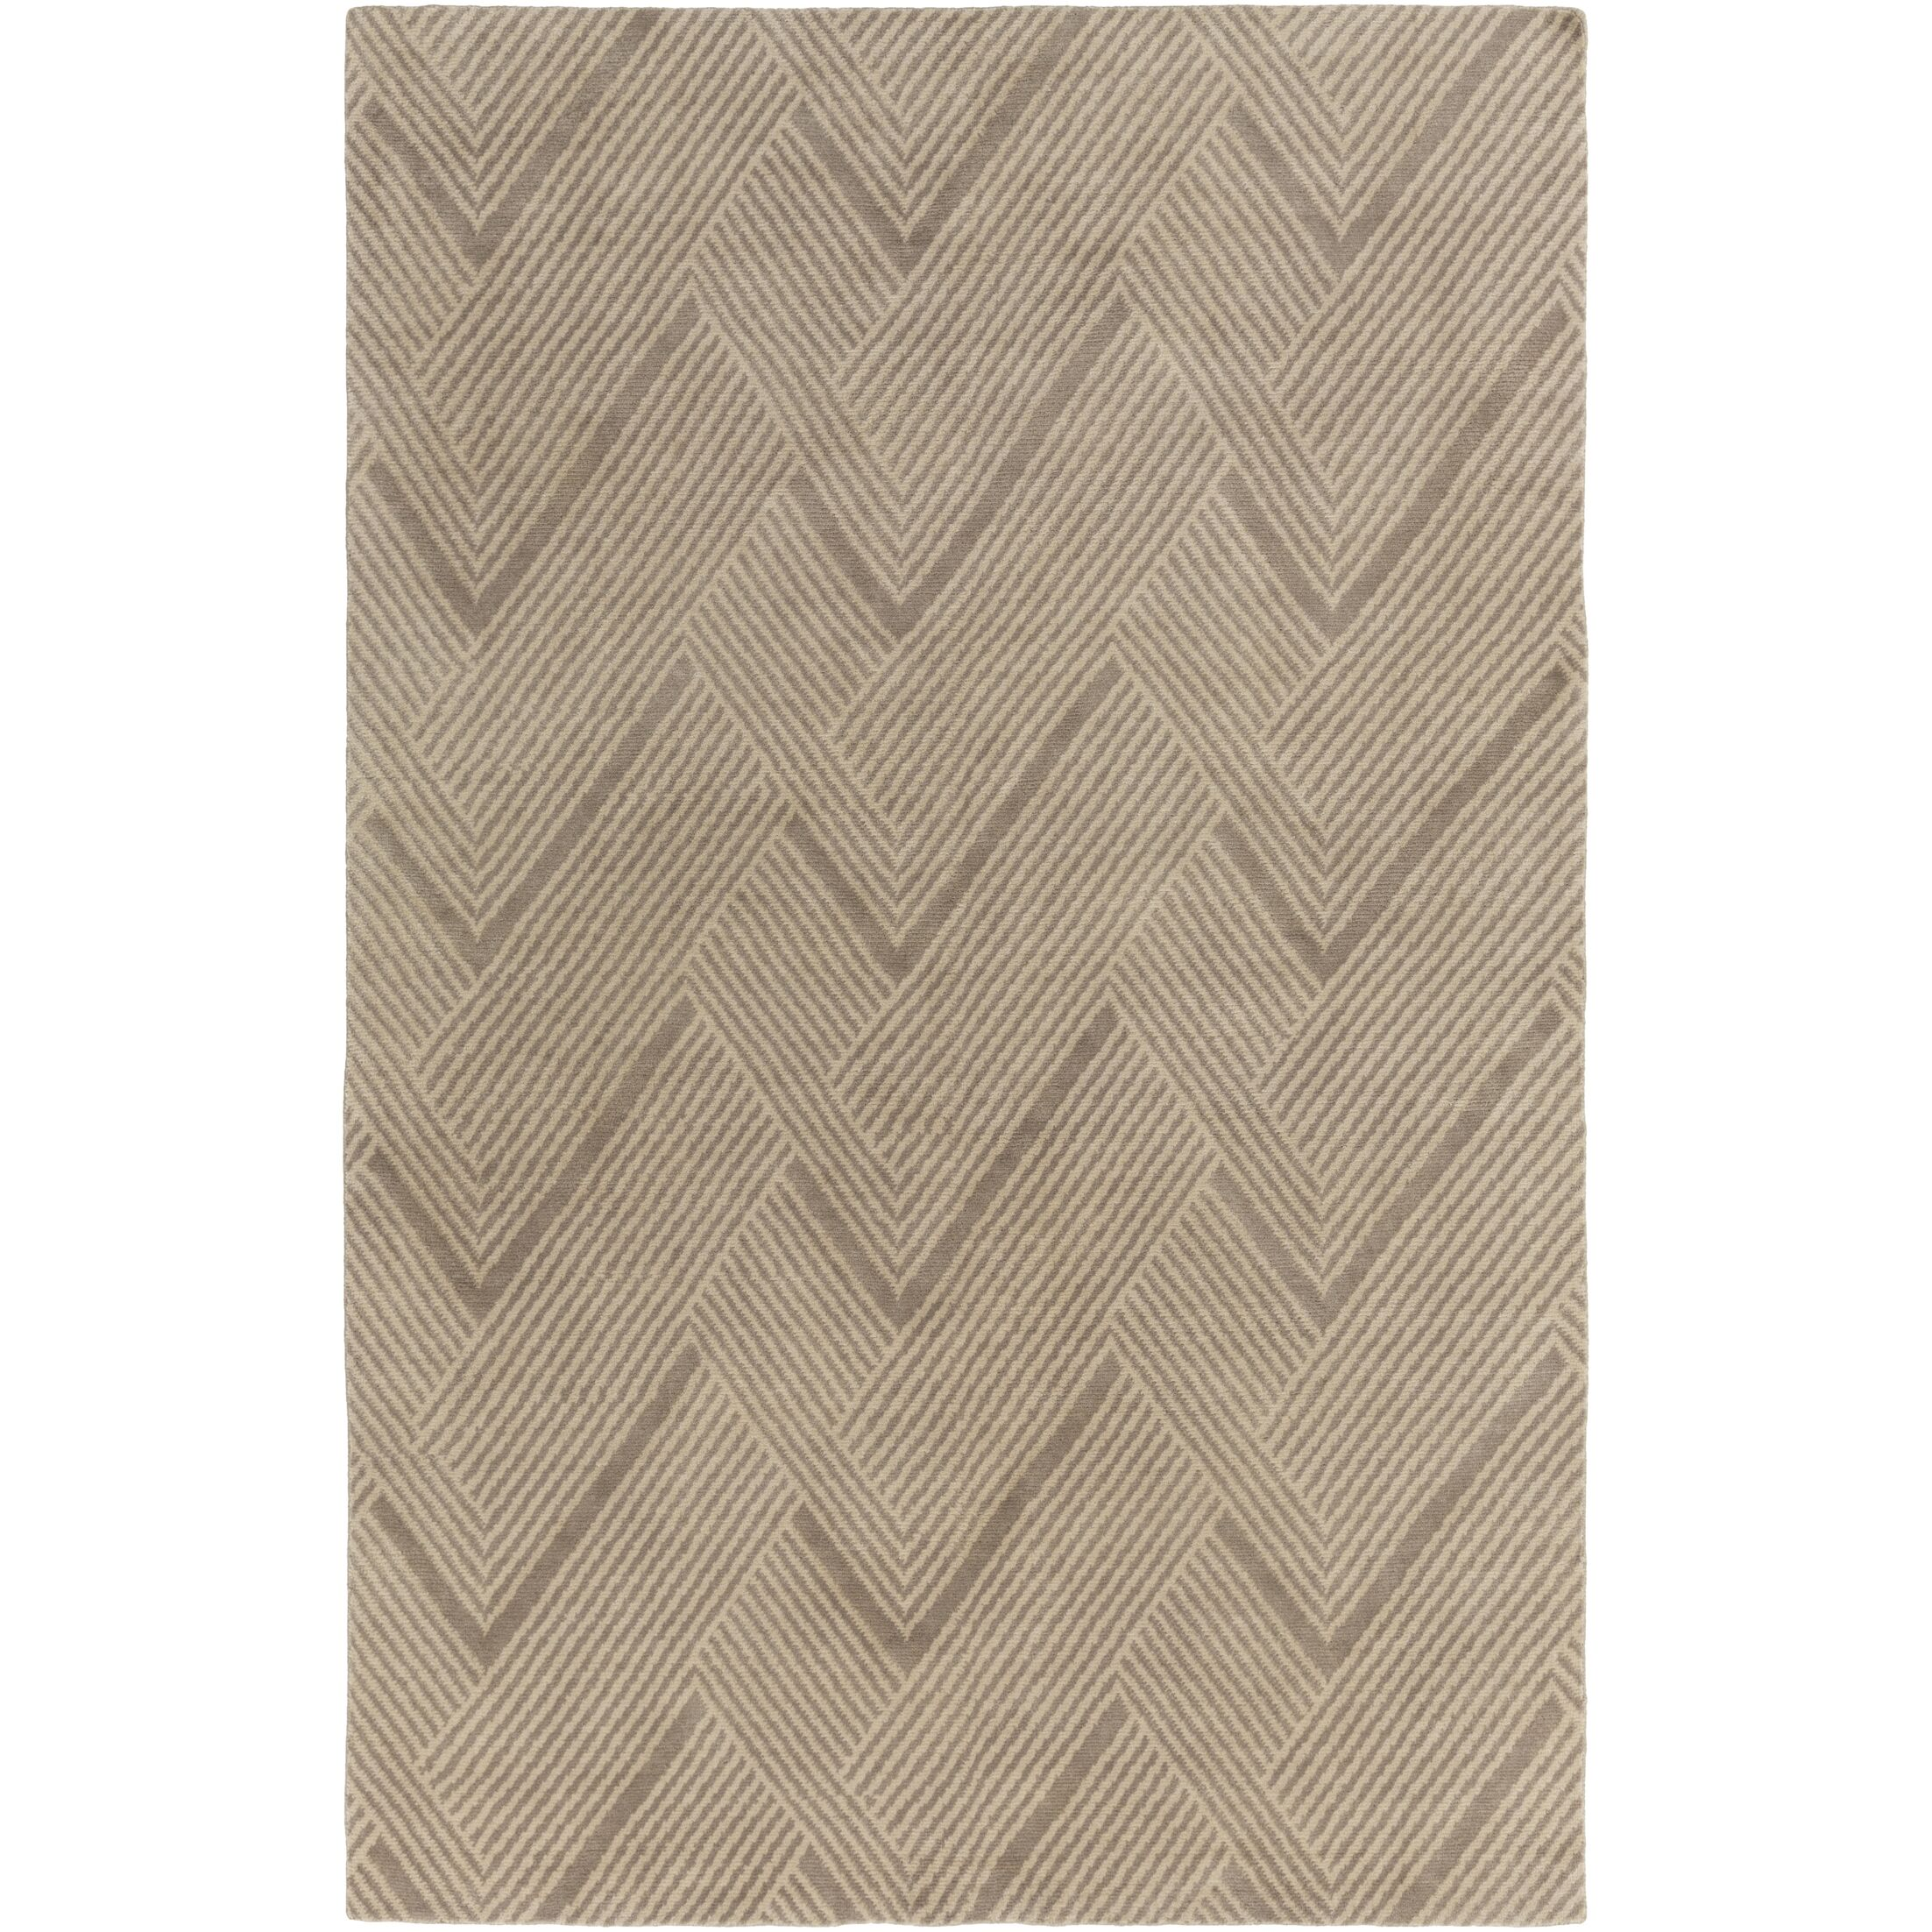 Clive Hand-Tufted Wool Light Brown Area Rug Rug Size: Rectangle 4' x 6'